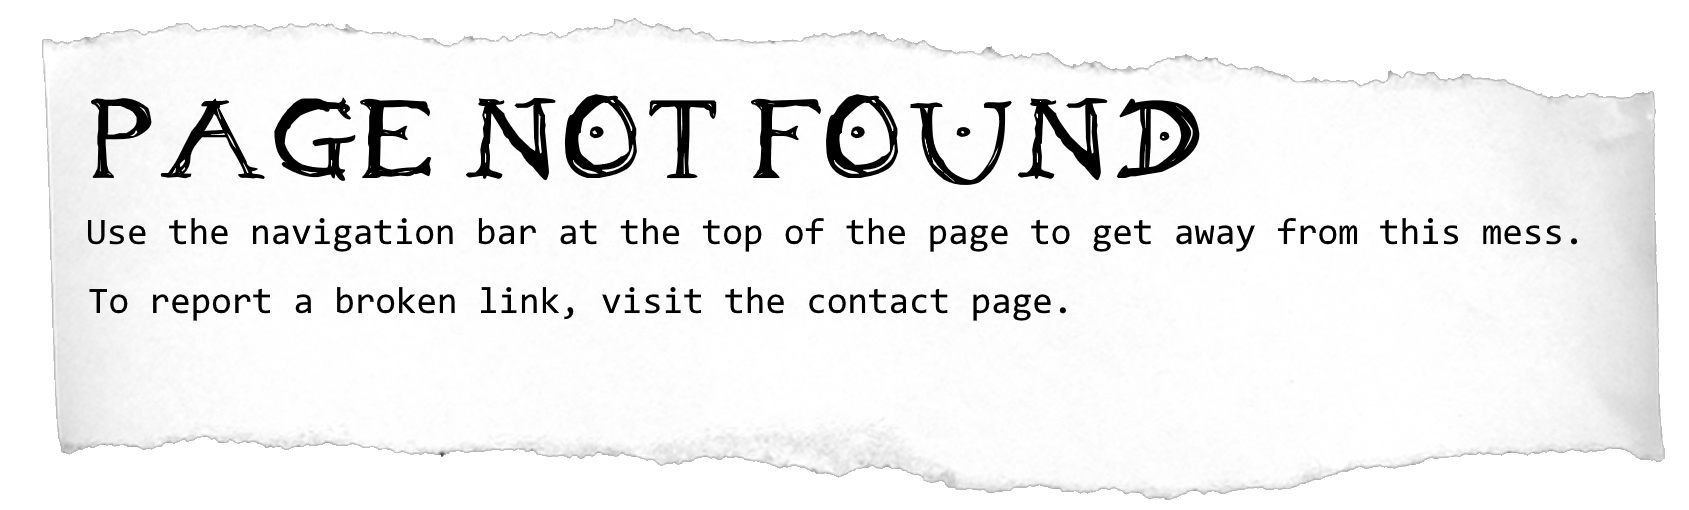 404 - Page not found!